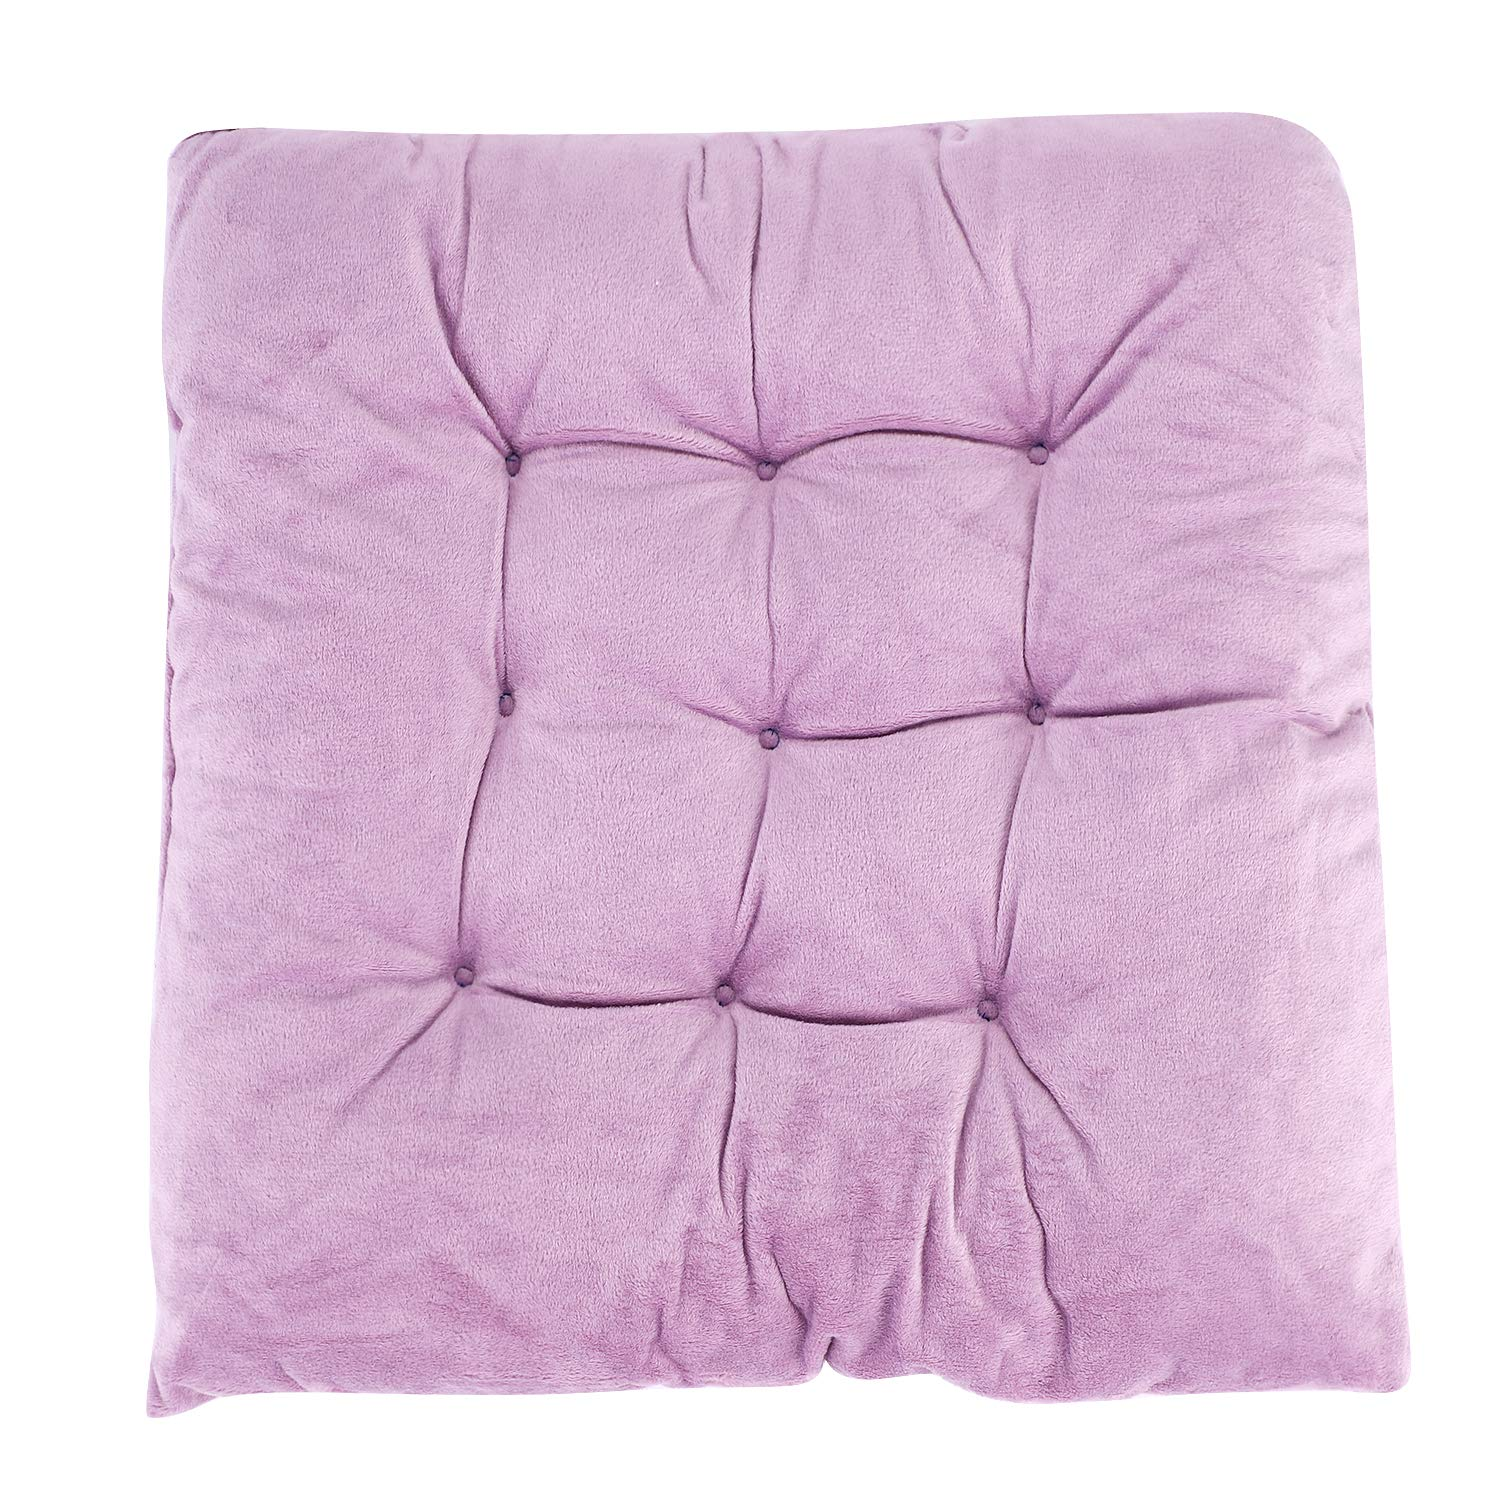 Comfortable and Breathable QCHOMEE Crystal Velvet Seat Cushion Soft Indoor Home Garden Patio Home Cushion Kitchen Office Square Cotton Buttocks Chair Pads